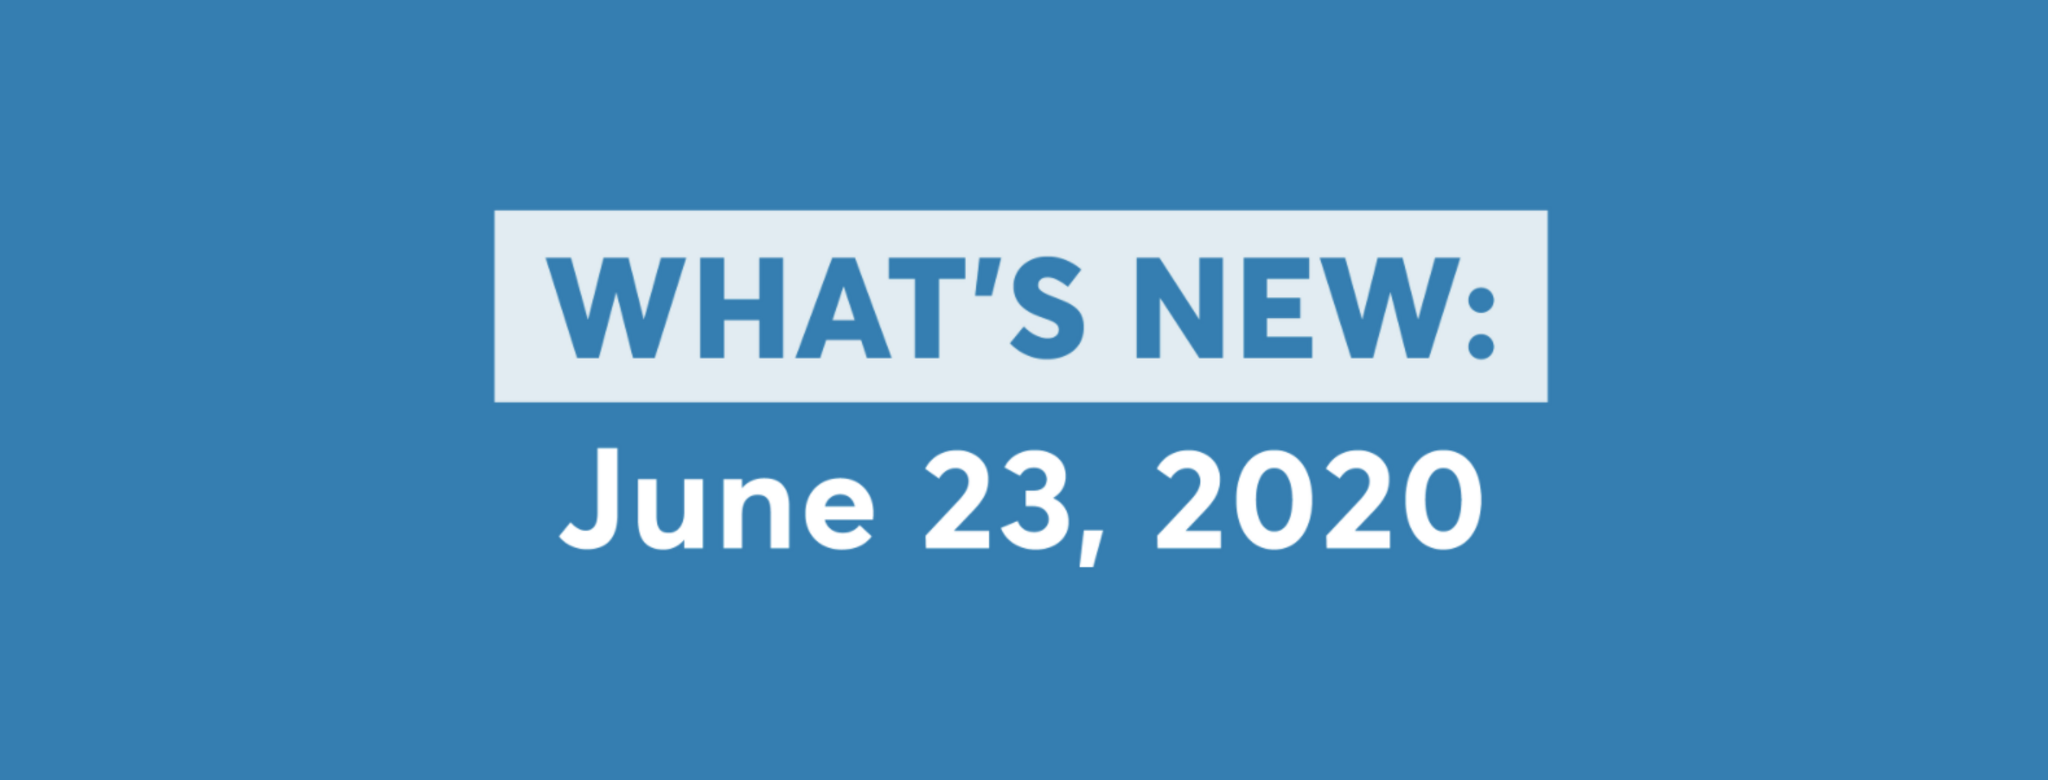 new software updates june 23 2020